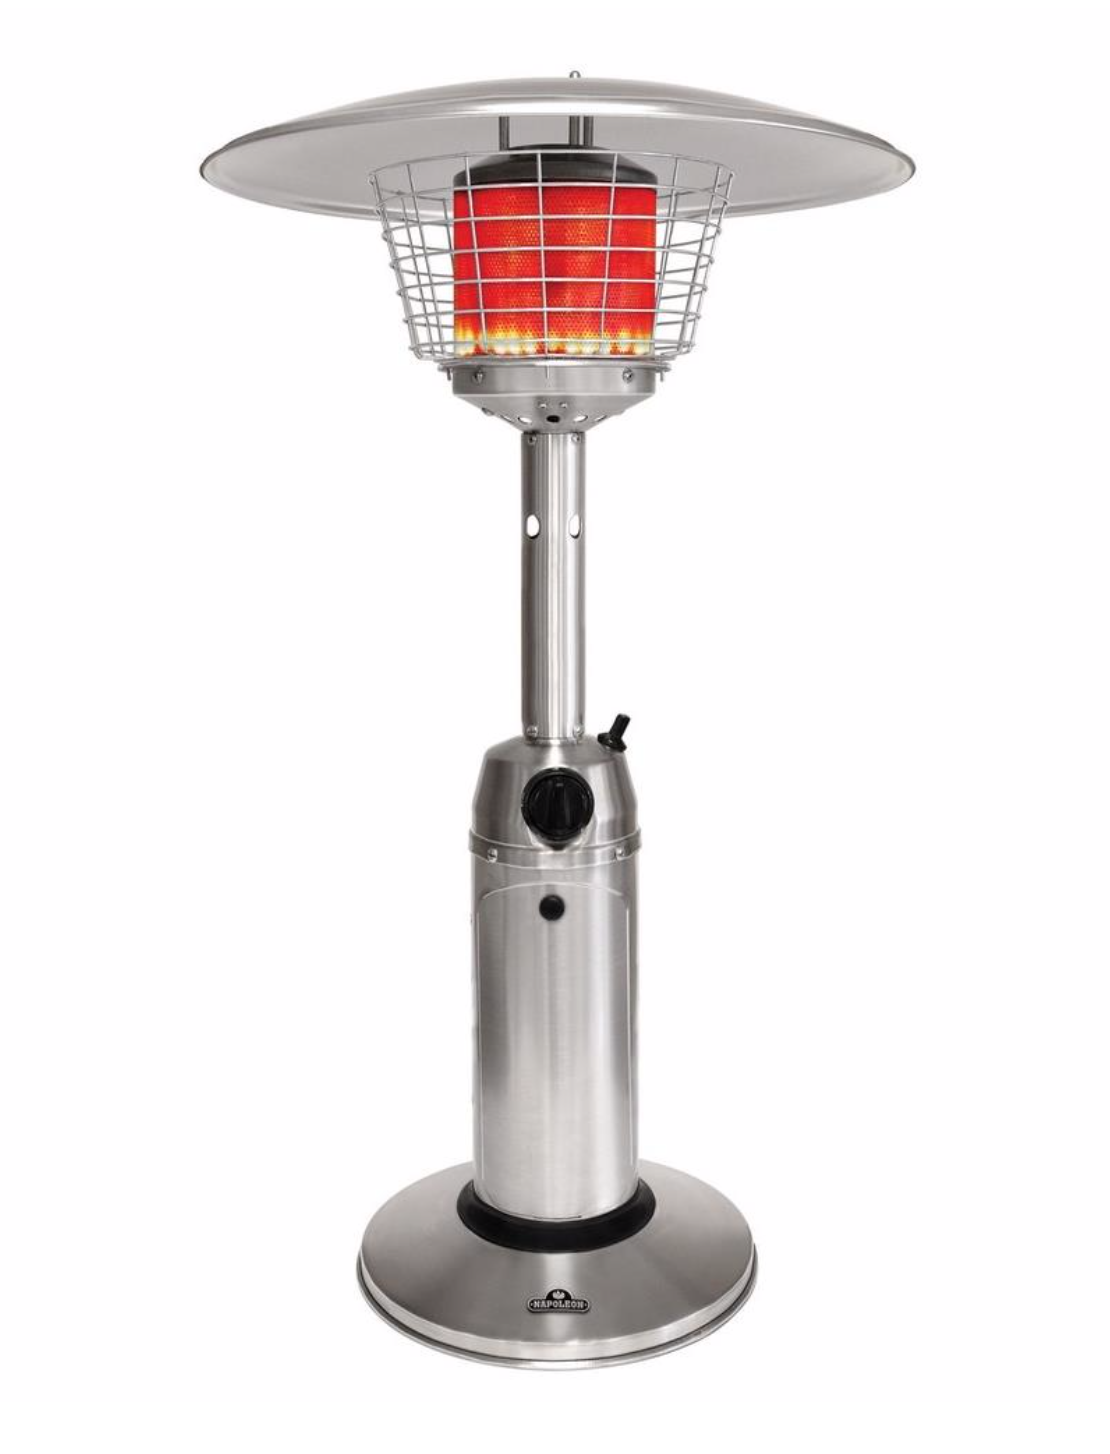 This Sleek Designed Table Top Patio Heater Is Both Portable And